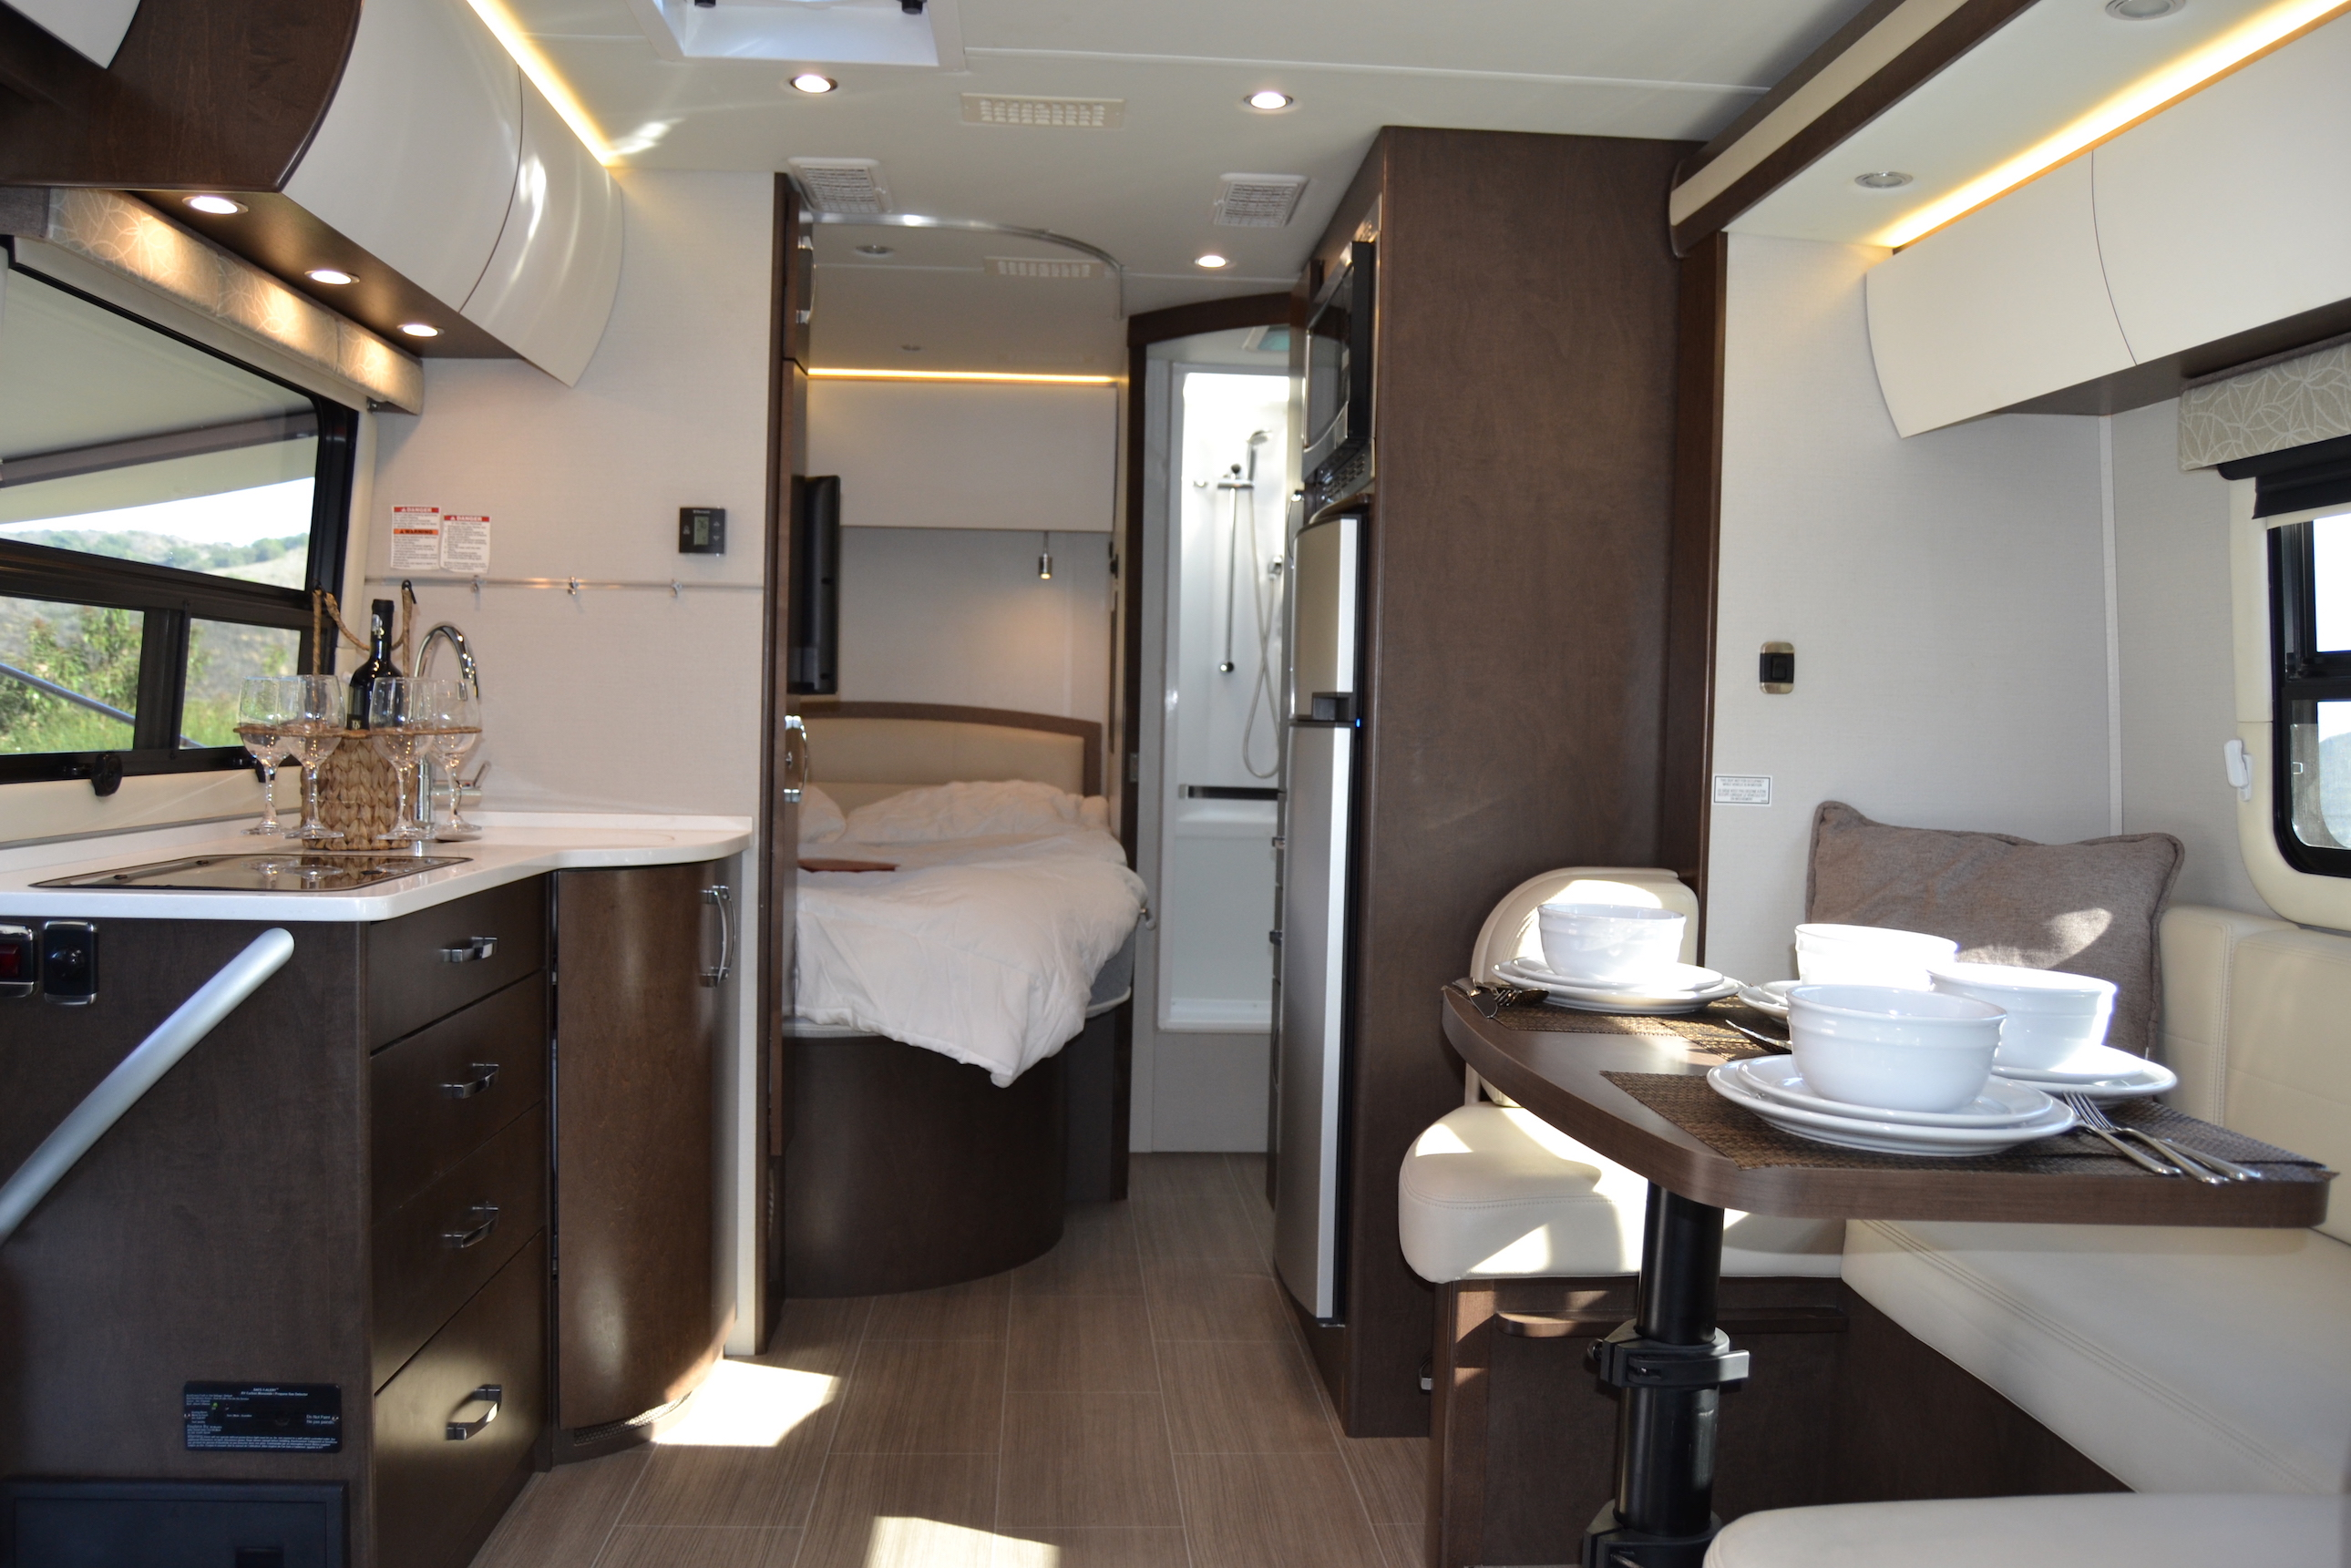 Best RV to buy as a first time camper Luxe RV California Las vegas